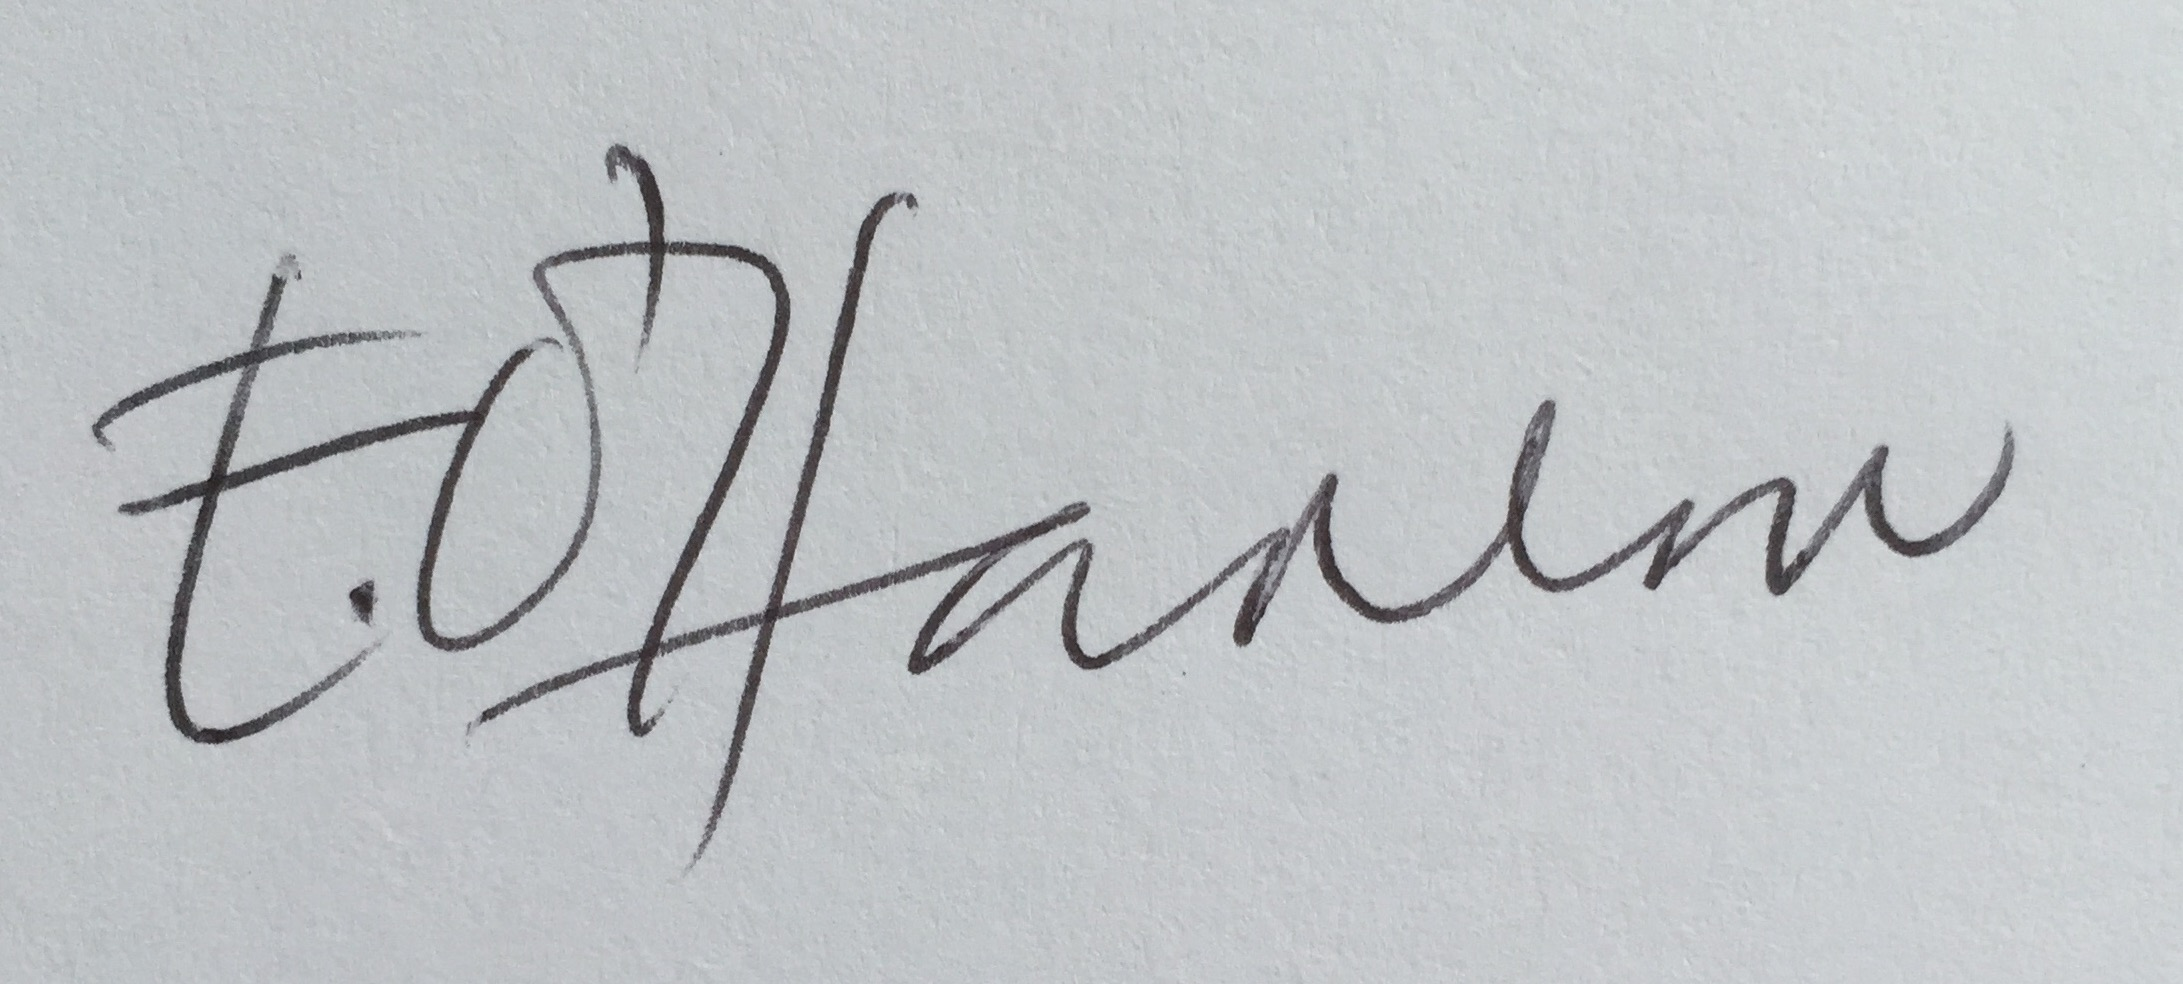 Elvie O'Hanlon Signature